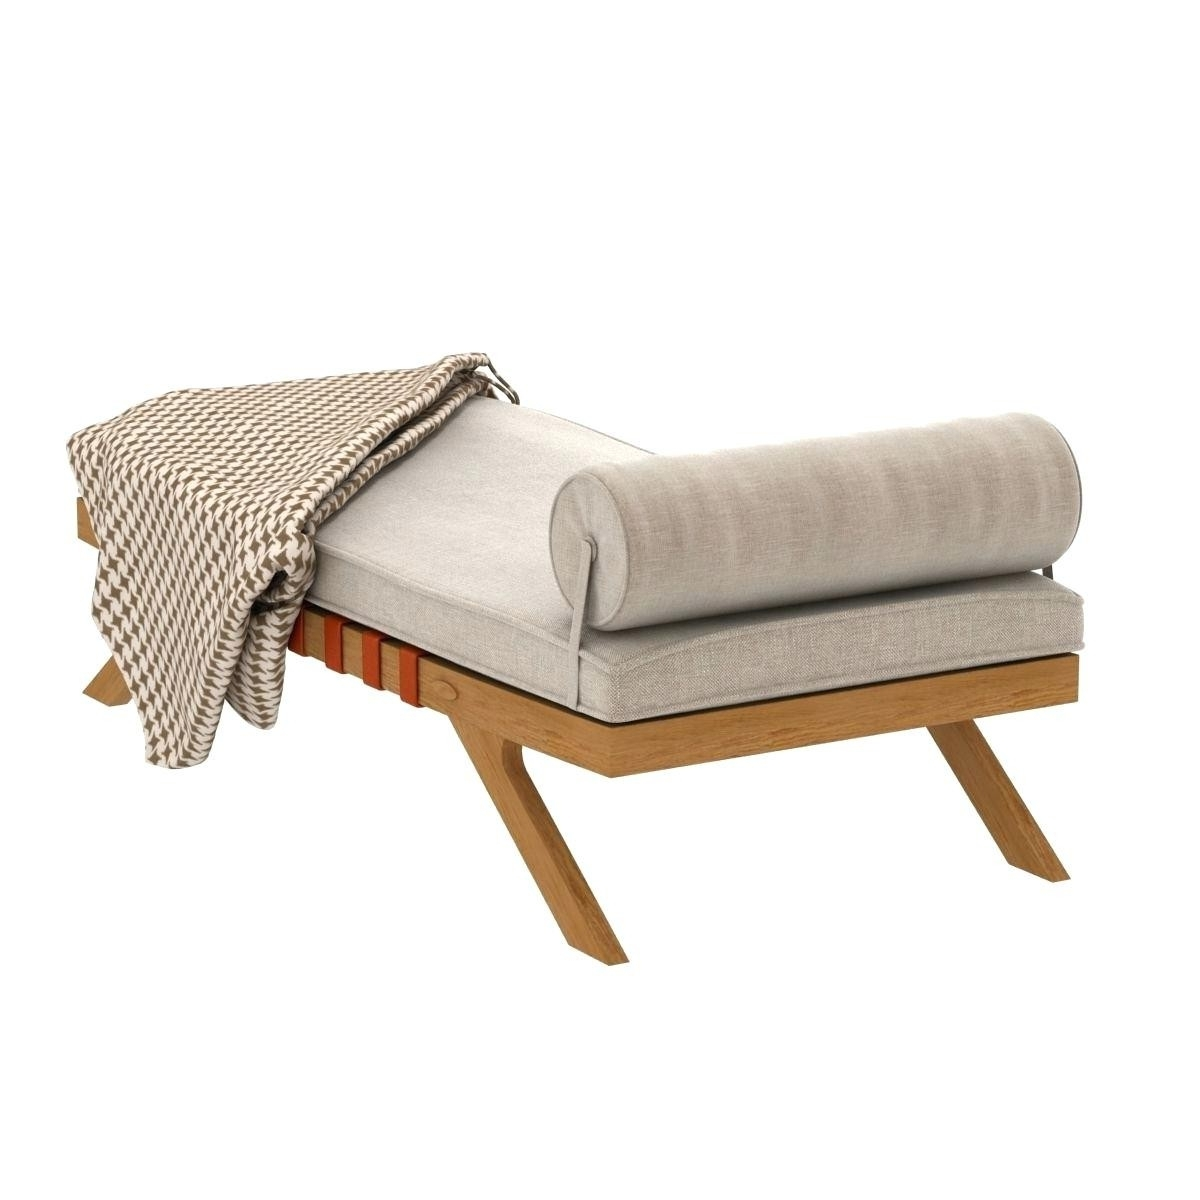 Furniture : History Of Chaise Lounge Ikea Wicker Chaise Lounge Uk Throughout Favorite Chaise Lounge Chairs Under $ (View 7 of 15)